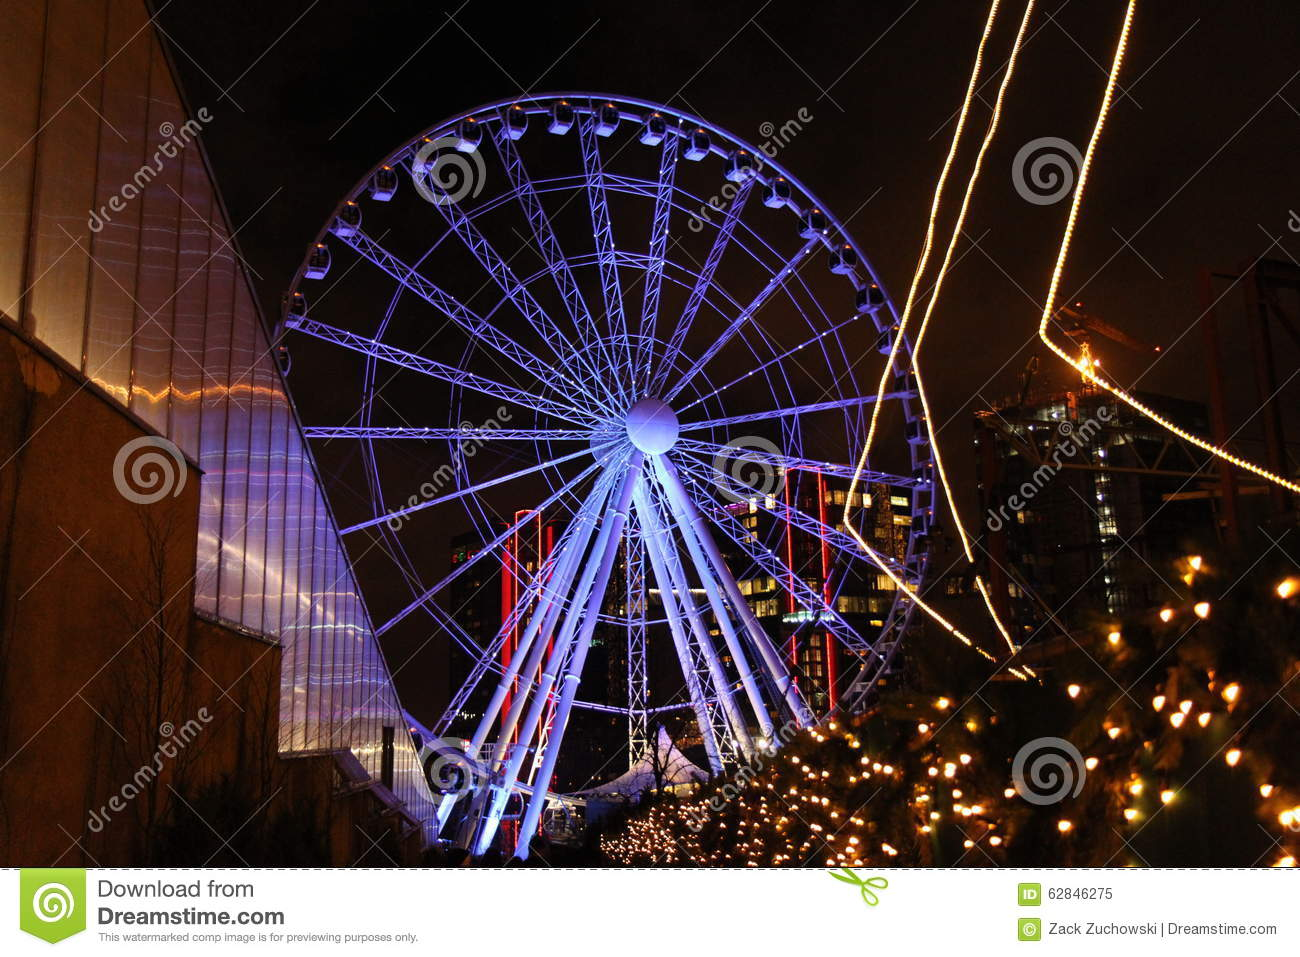 christmas lights and decorations at liseberg amusement park in gothenburg sweden with a view of a ferris wheel christmas trees stars and buildings - Christmas Ferris Wheel Decoration